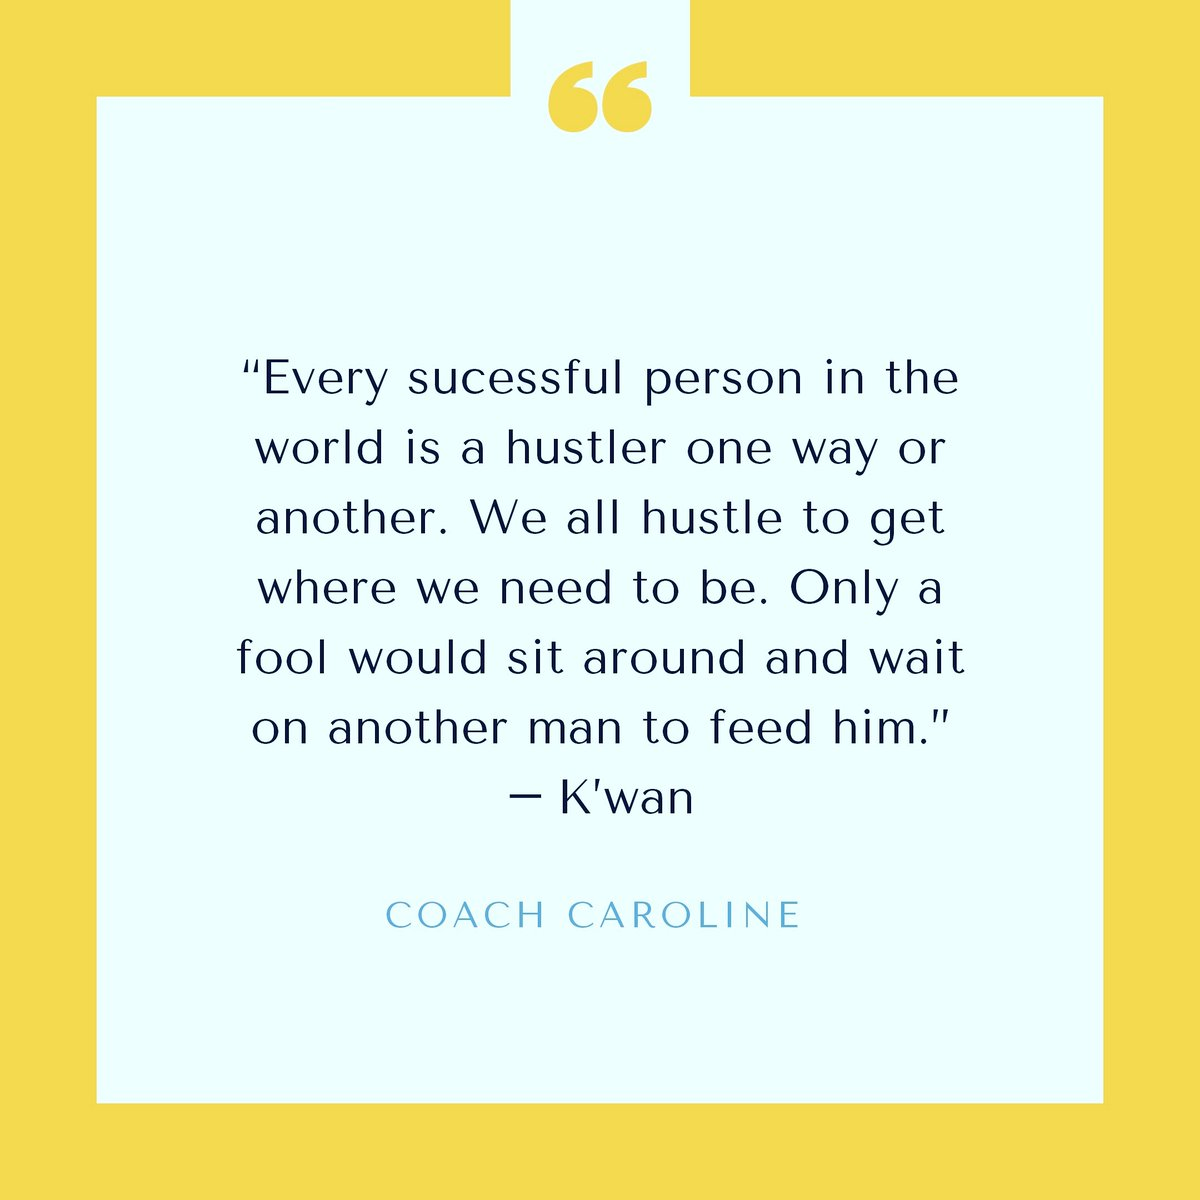 Be the game changer  #Successful #successquotes #growthmindset #quotes #happy #smile #bethegamechanger #staystrong #love #live #confidently #motivation #inspirational #stayinspired #carolinejoseph https://t.co/SGy6IHKXBH